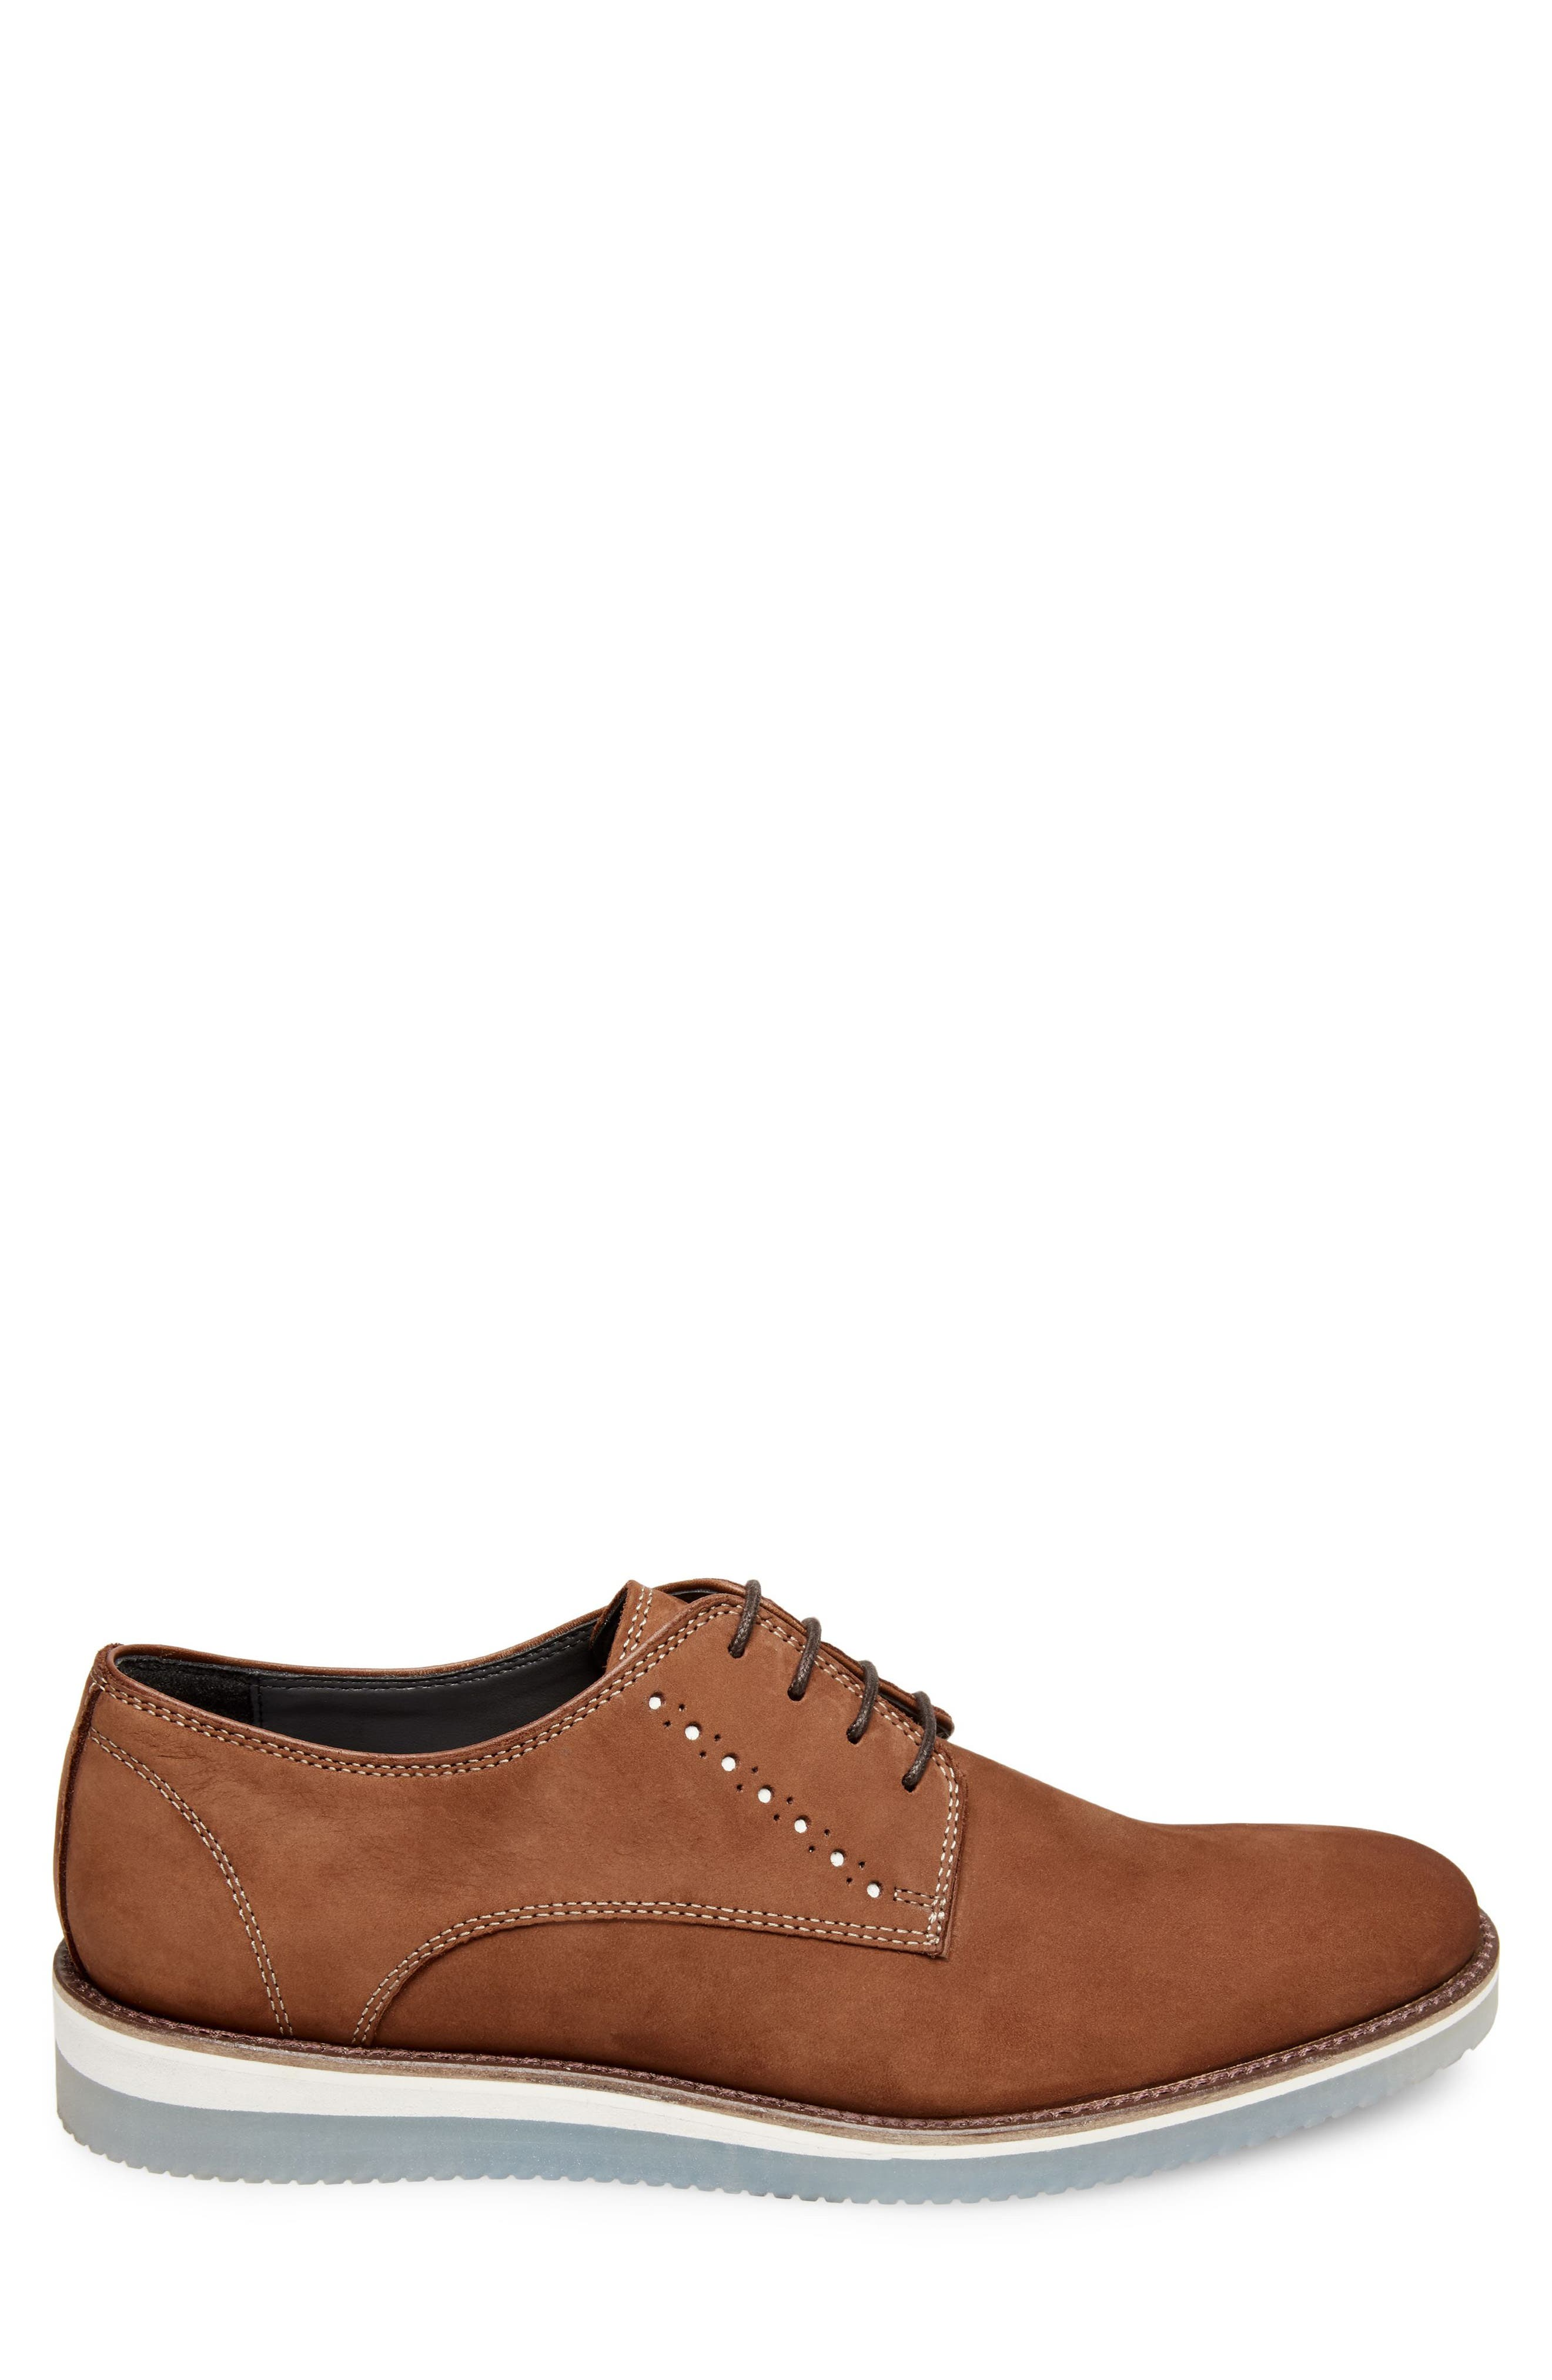 Inquest Plain Toe Derby,                             Alternate thumbnail 3, color,                             Cognac Nubuck